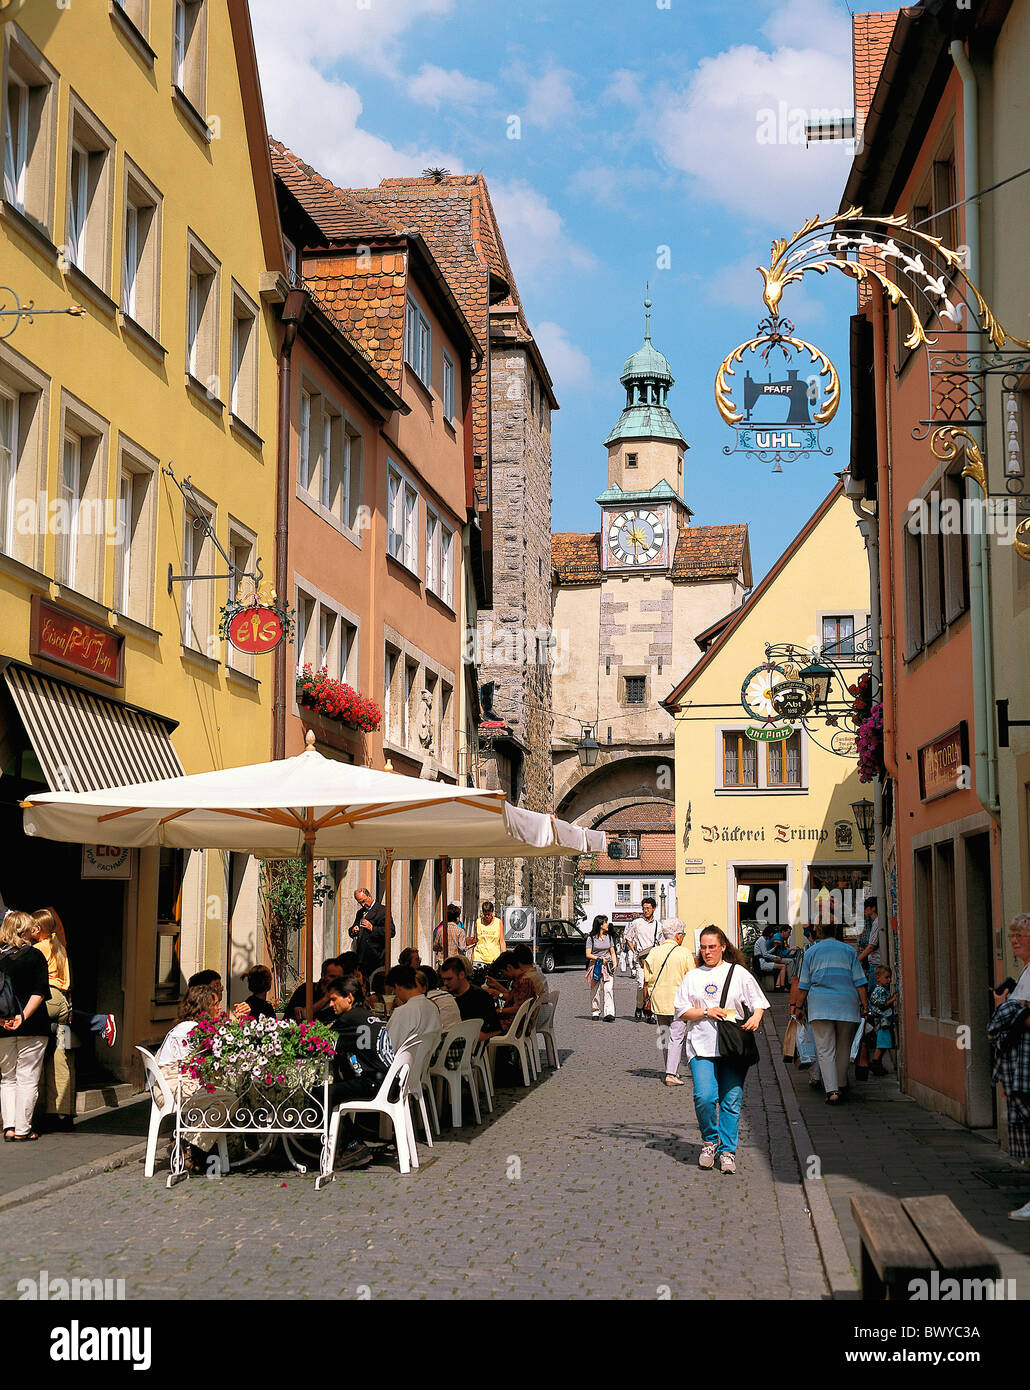 Vieille Ville Allemagne Europe maisons à colombages vit personnes Marcus tower street cafe Rothenburg Photo Stock